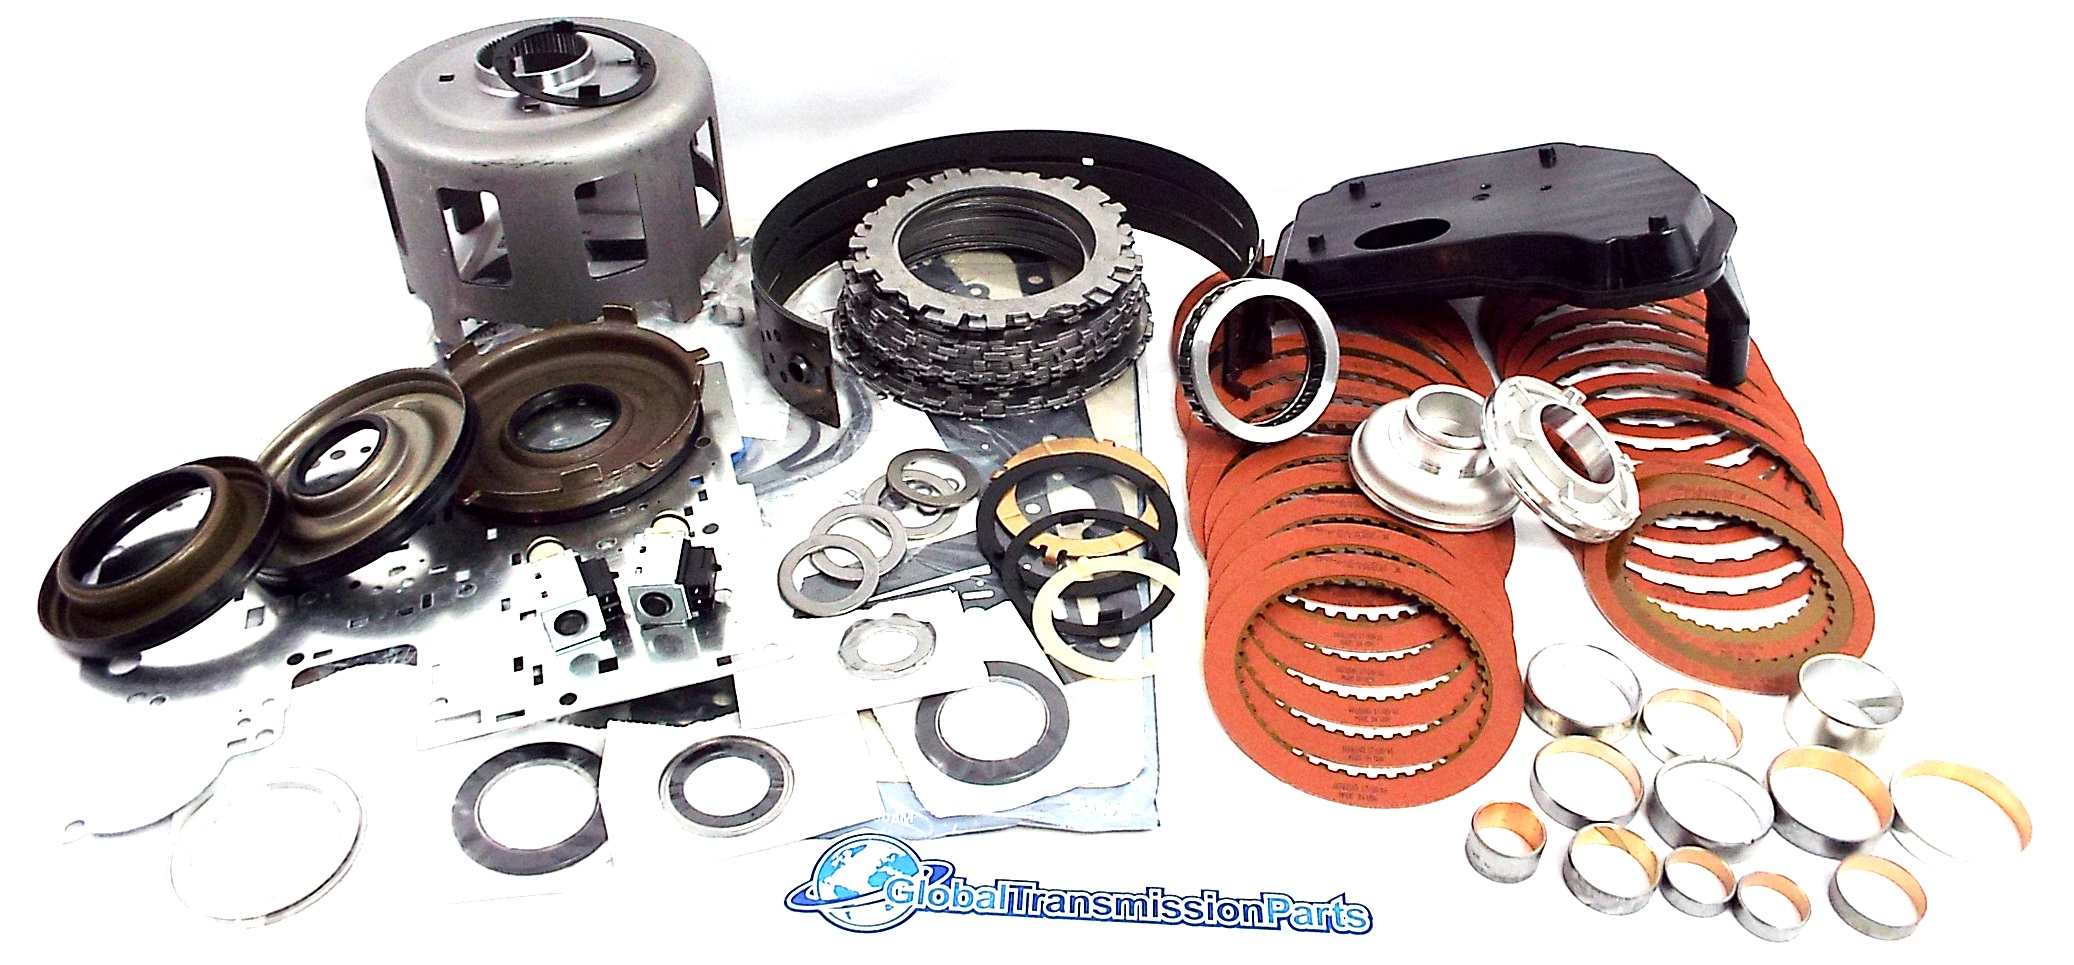 4l60e-700r4-4l65e-transmission-racing-performance-stage-1-rebuild-kits.jpg